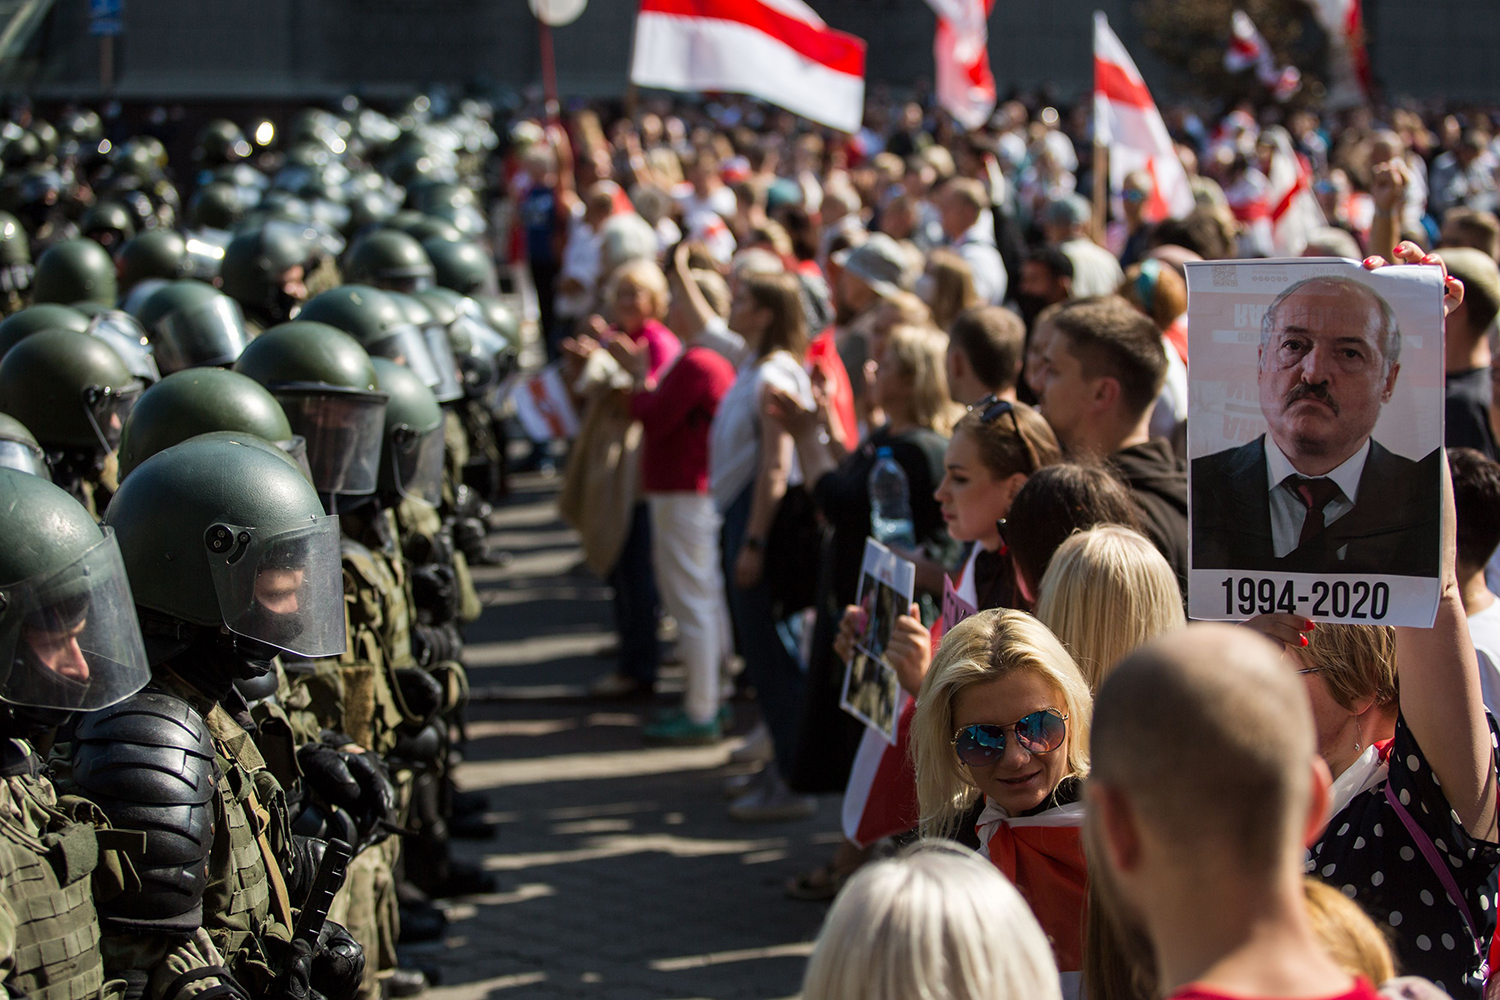 Belarusian service members block a street during an opposition supporters' rally protesting against the presidential election results in Minsk on Aug. 30, 2020.